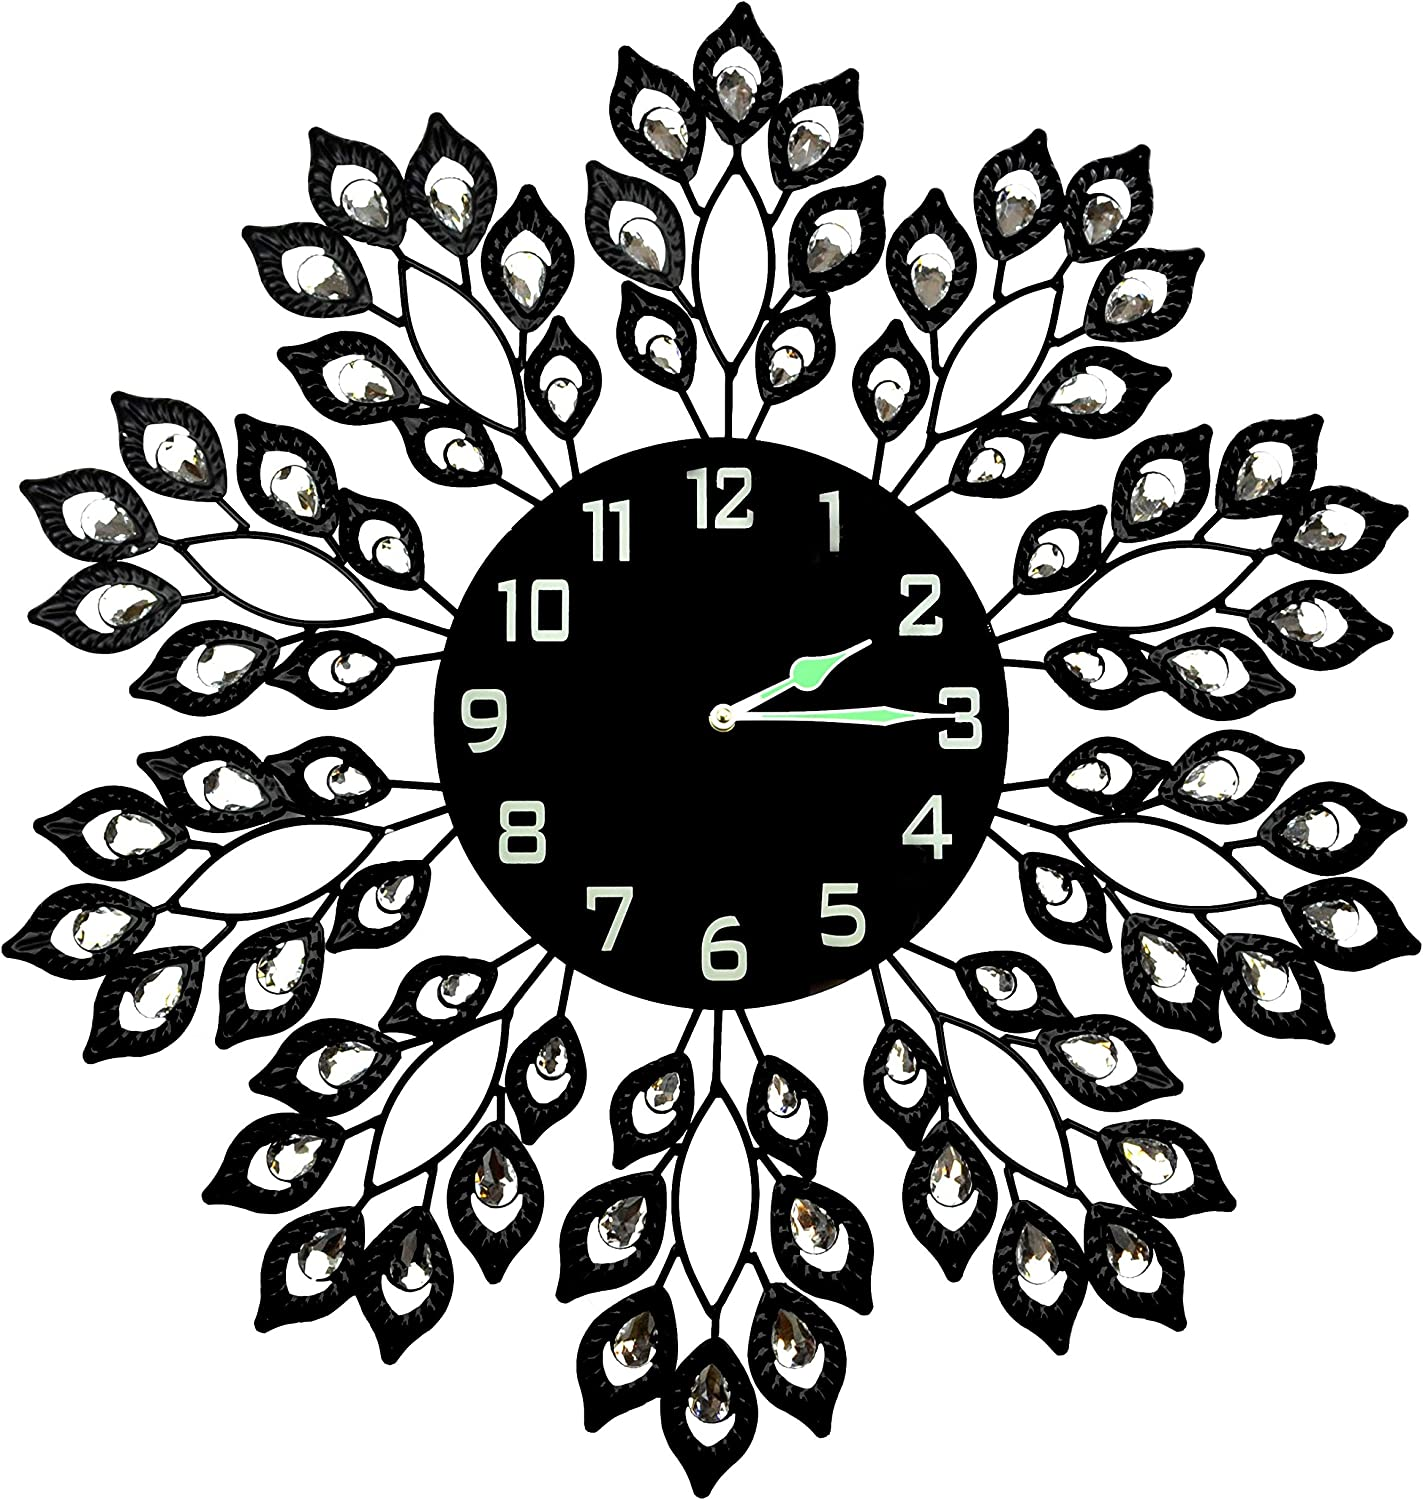 """LuLu Decor, 25"""" Black Leaf Metal Wall Clock, 9"""" Black Glass Dial with Arabic Numbers, Decorative Clock for Living Room, Bedroom, Office Space"""